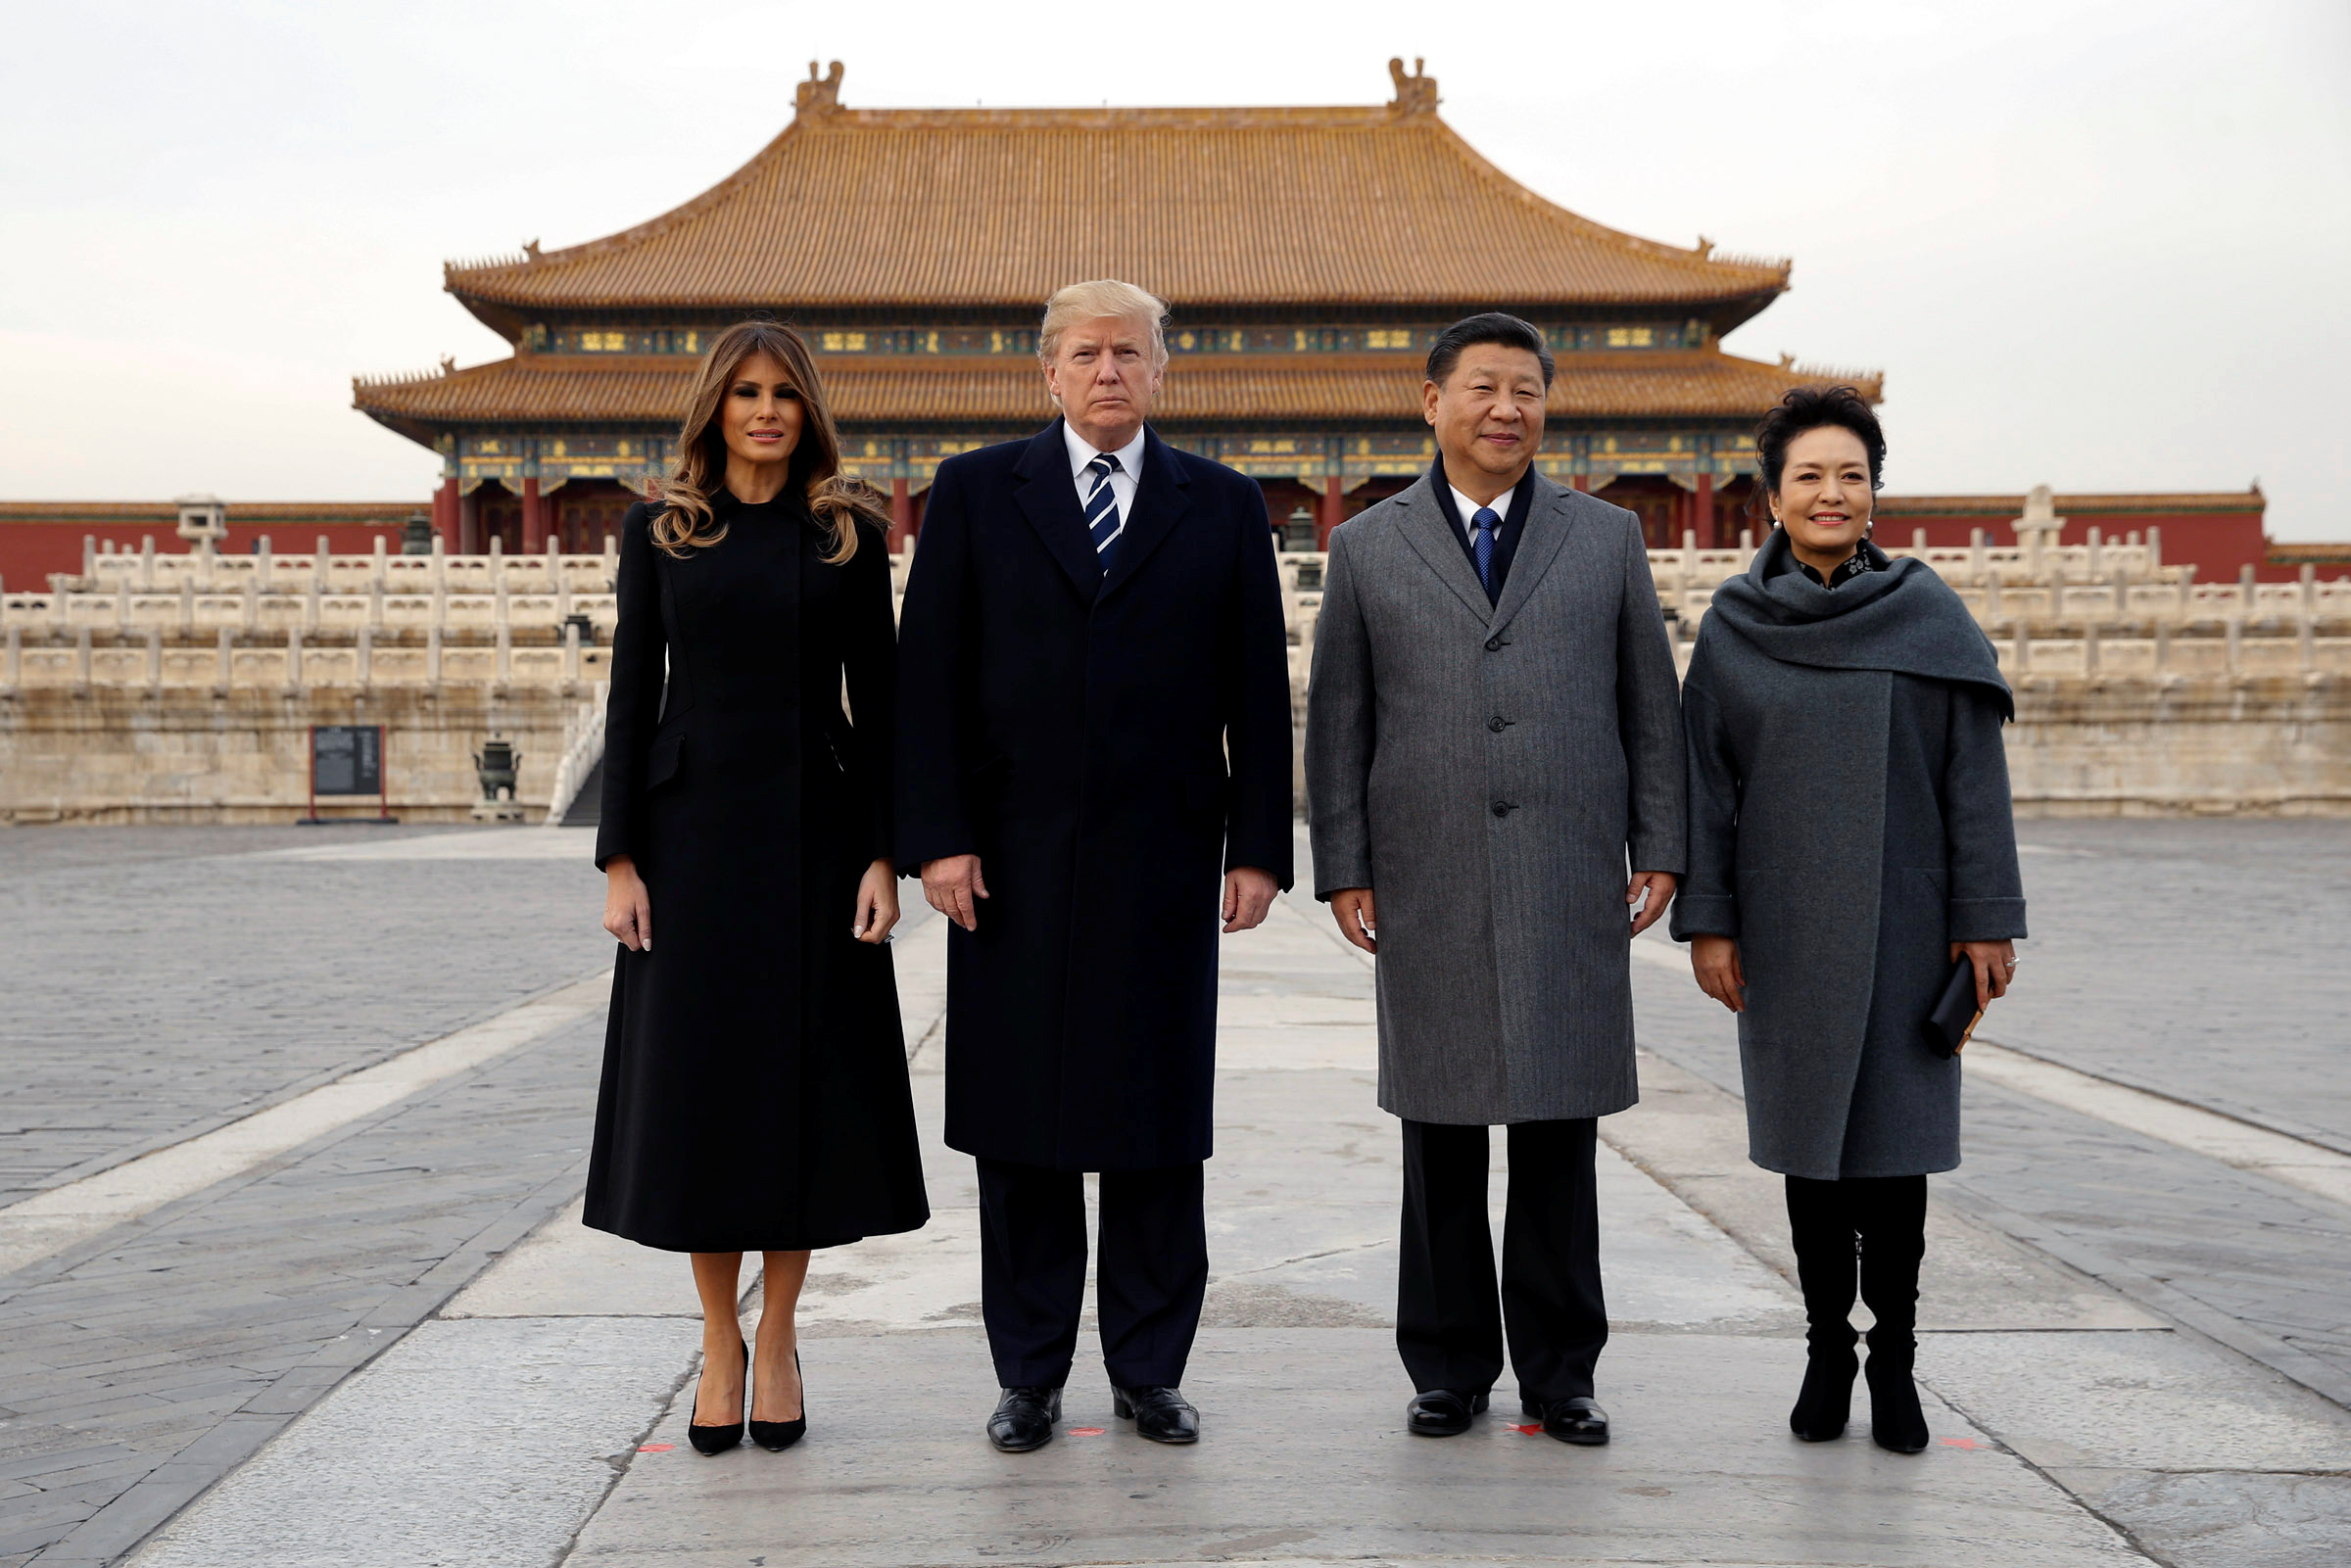 U.S. President Donald Trump and U.S. first lady Melania visit the Forbidden City with China's President Xi Jinping and China's First Lady Peng Liyuan in Beijing, China, November 8, 2017. REUTERS/Jonathan Ernst - RC13C8D168D0